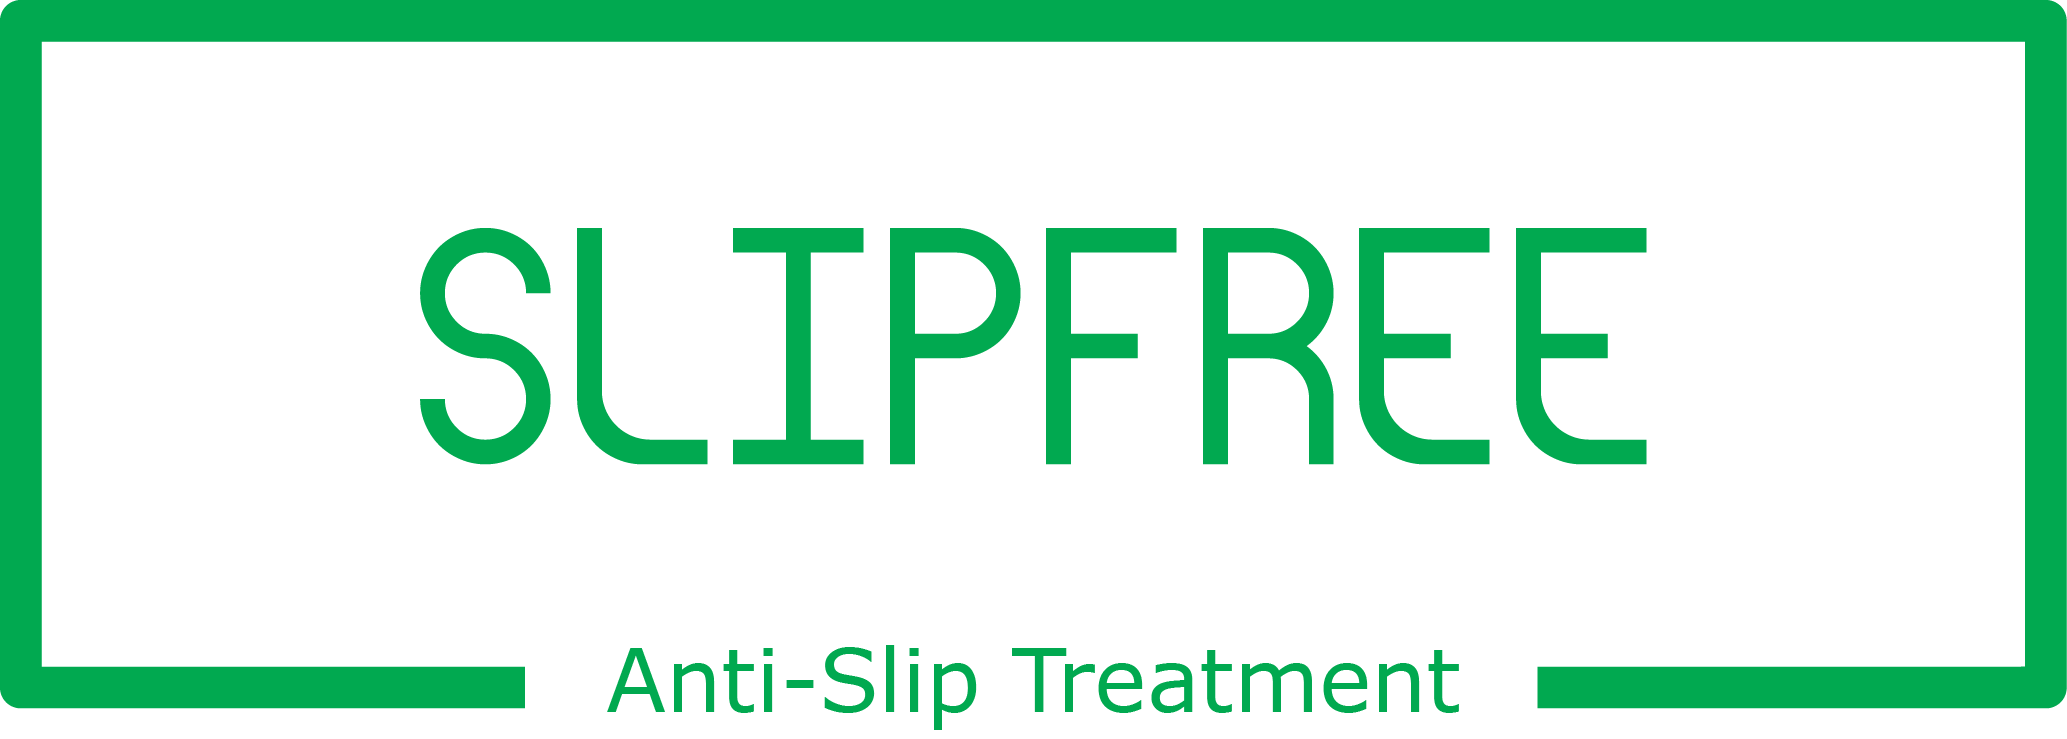 Slipfree